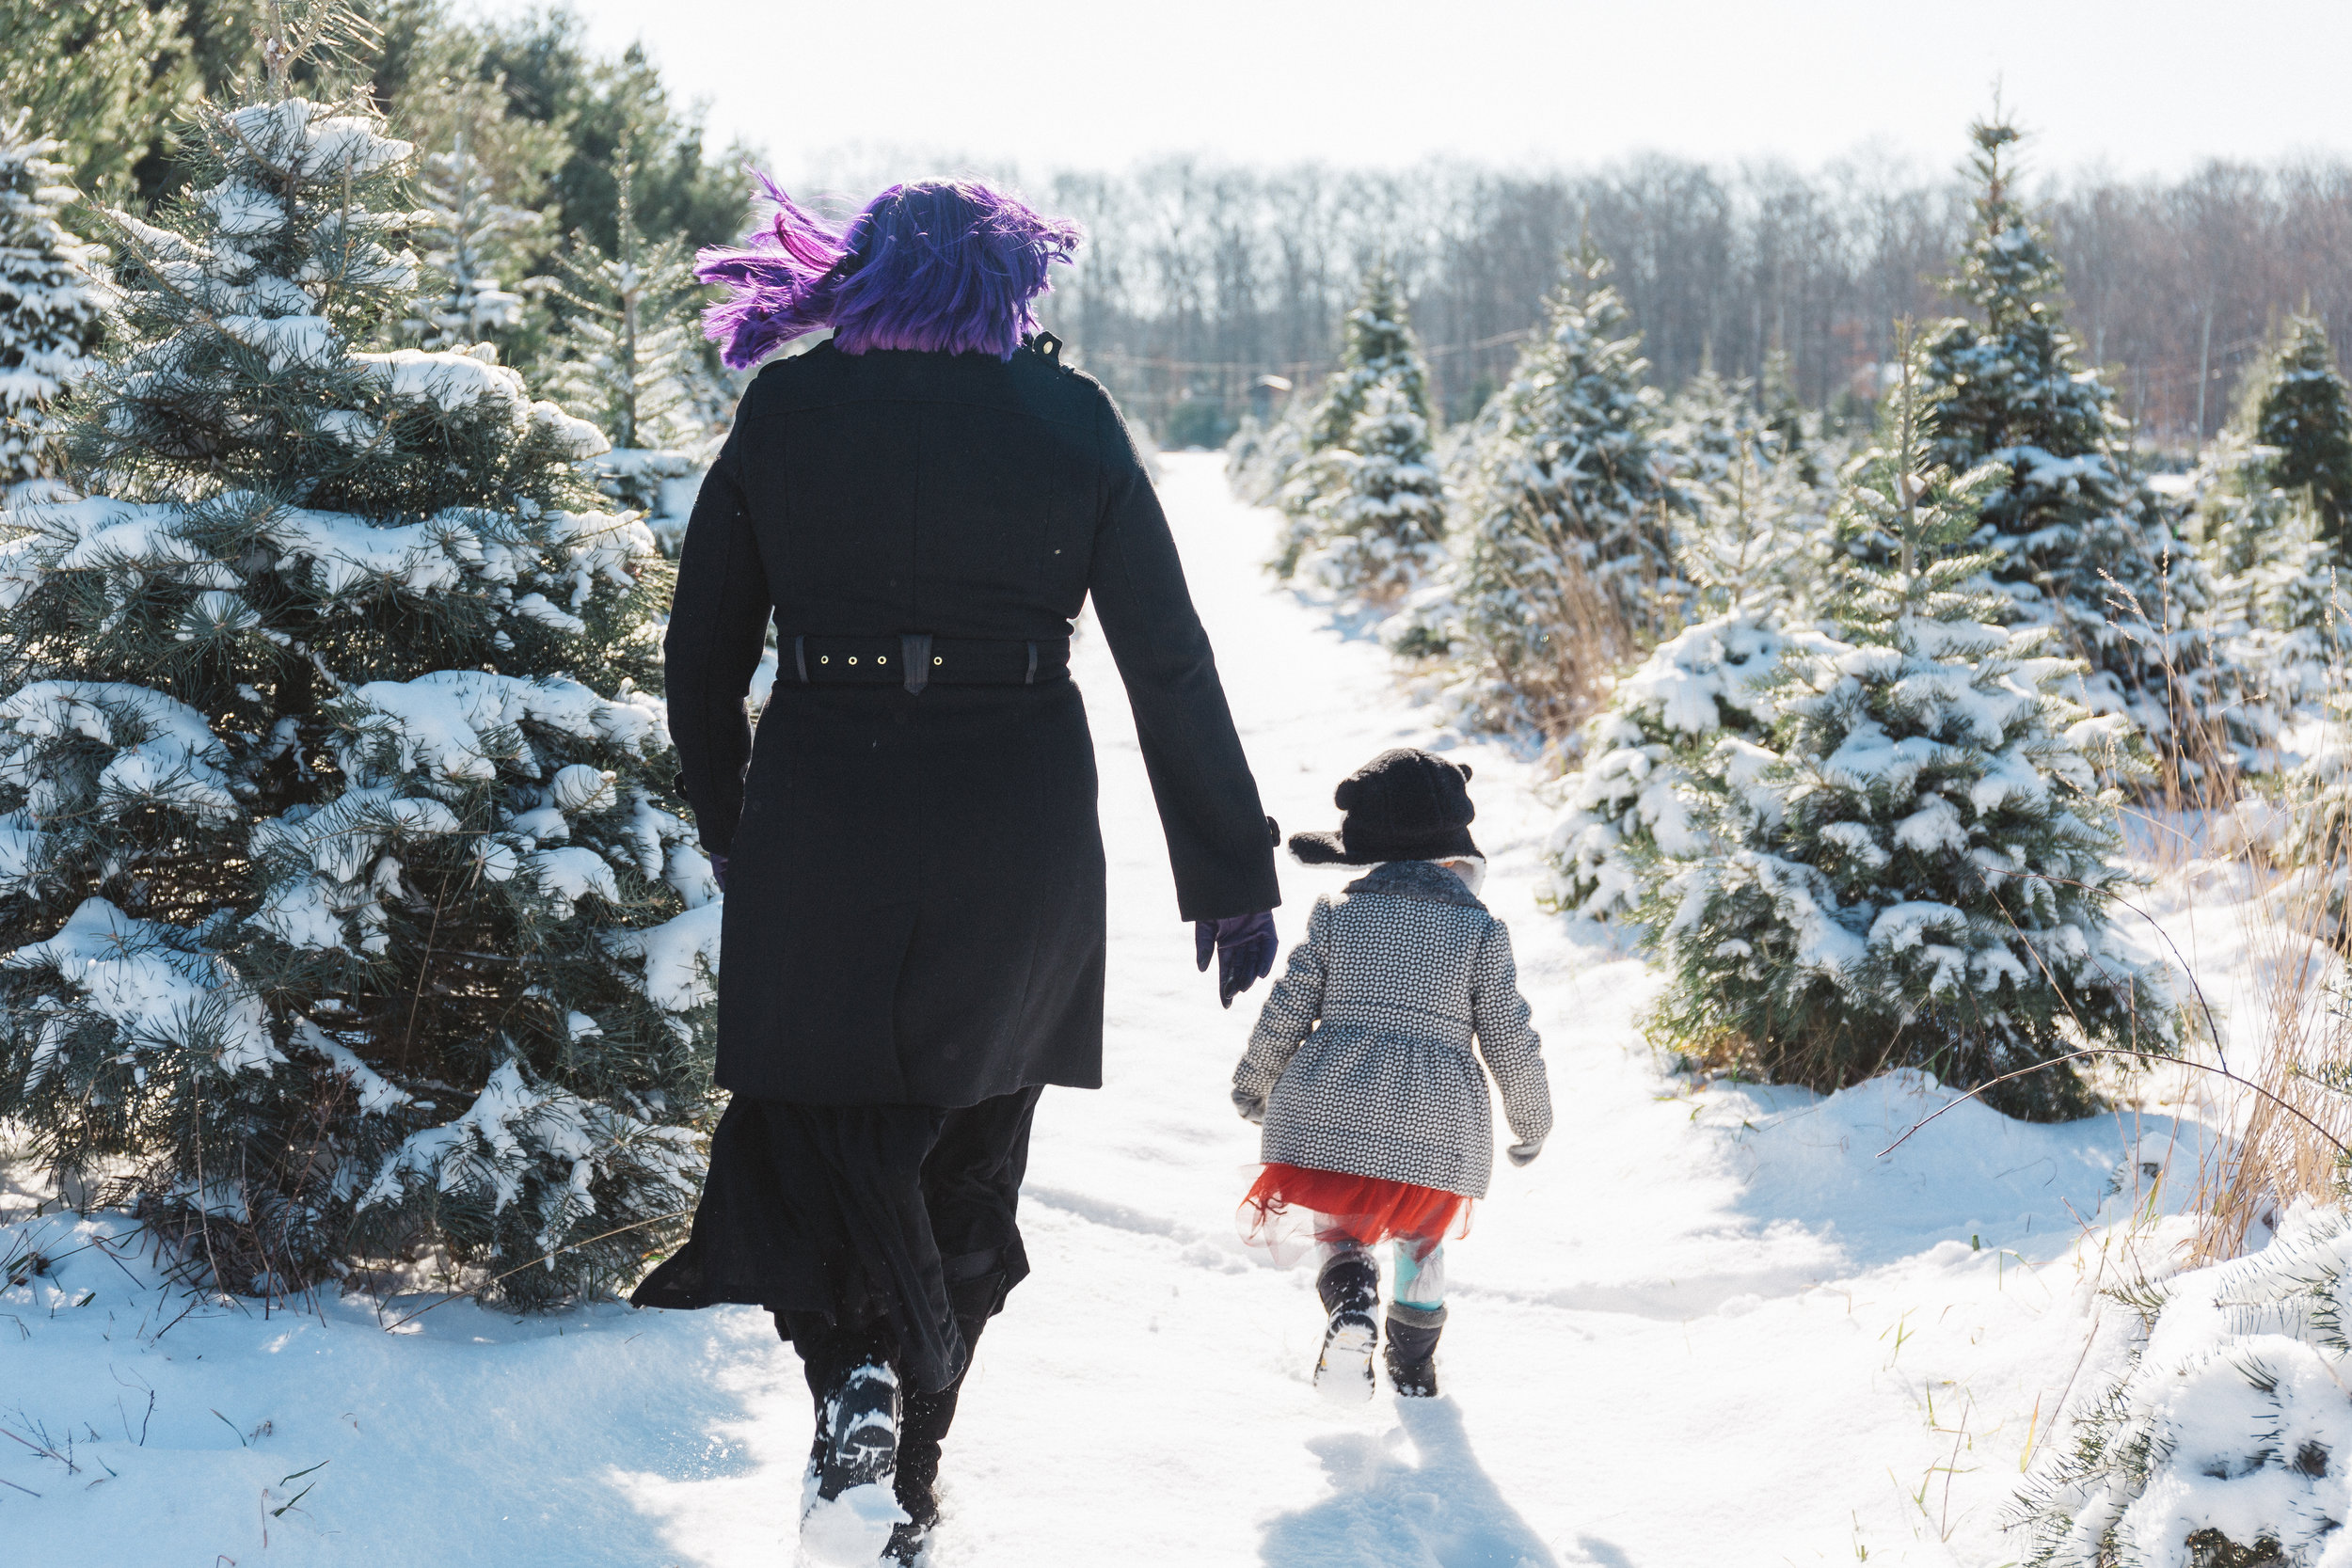 - She enjoyed that experience so much that she hired me for family photos that winter.